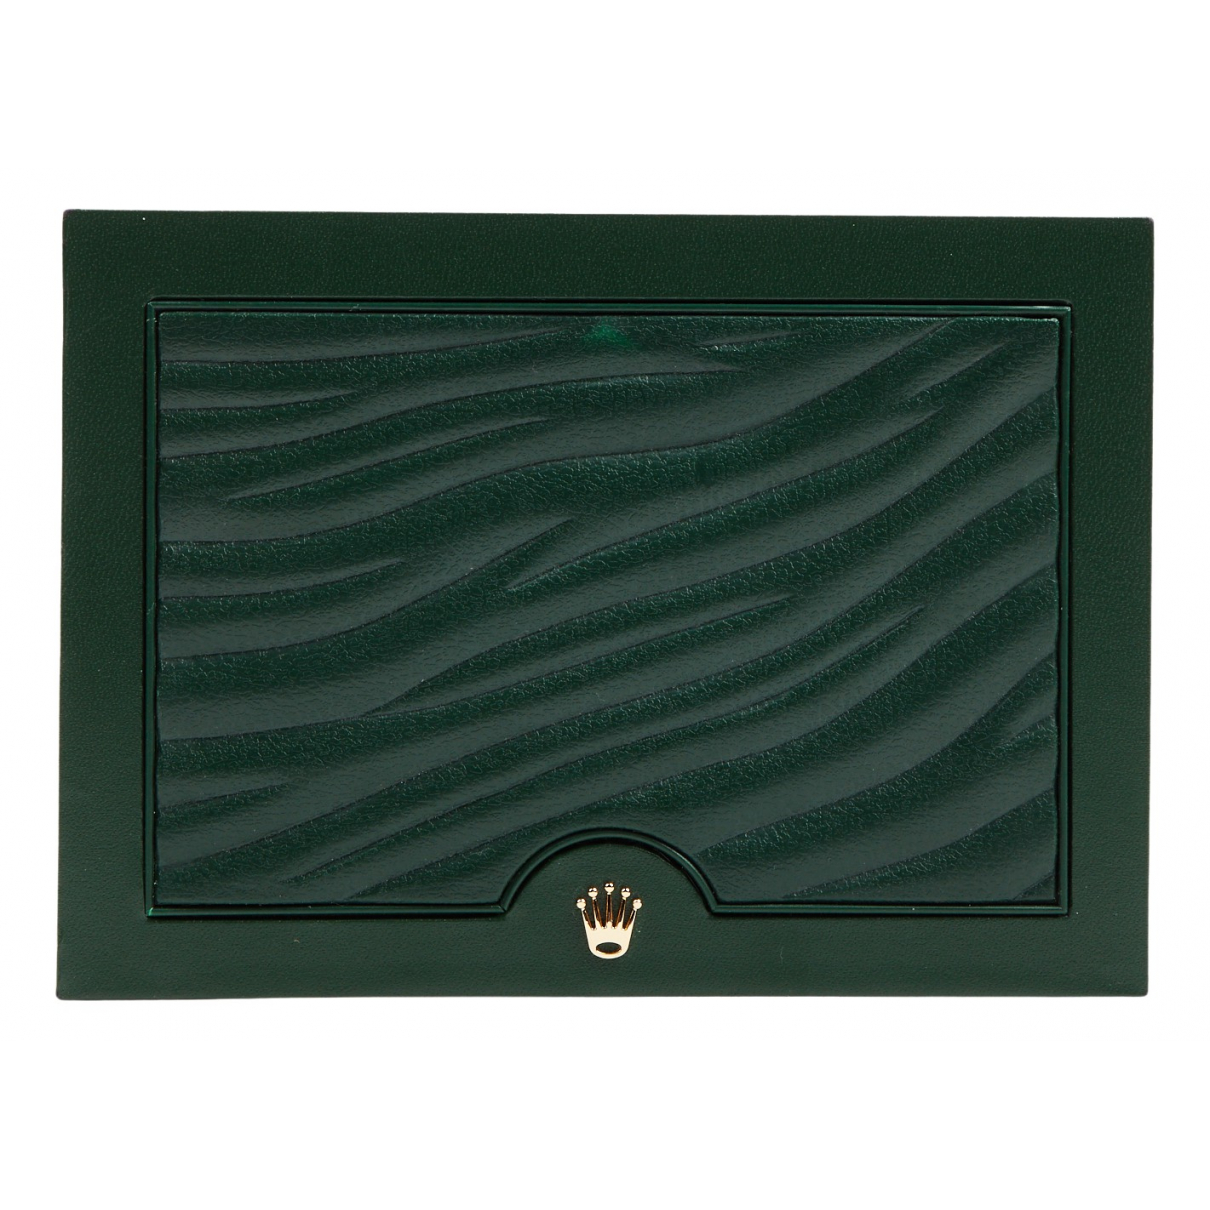 Rolex N Green Home decor for Life & Living N